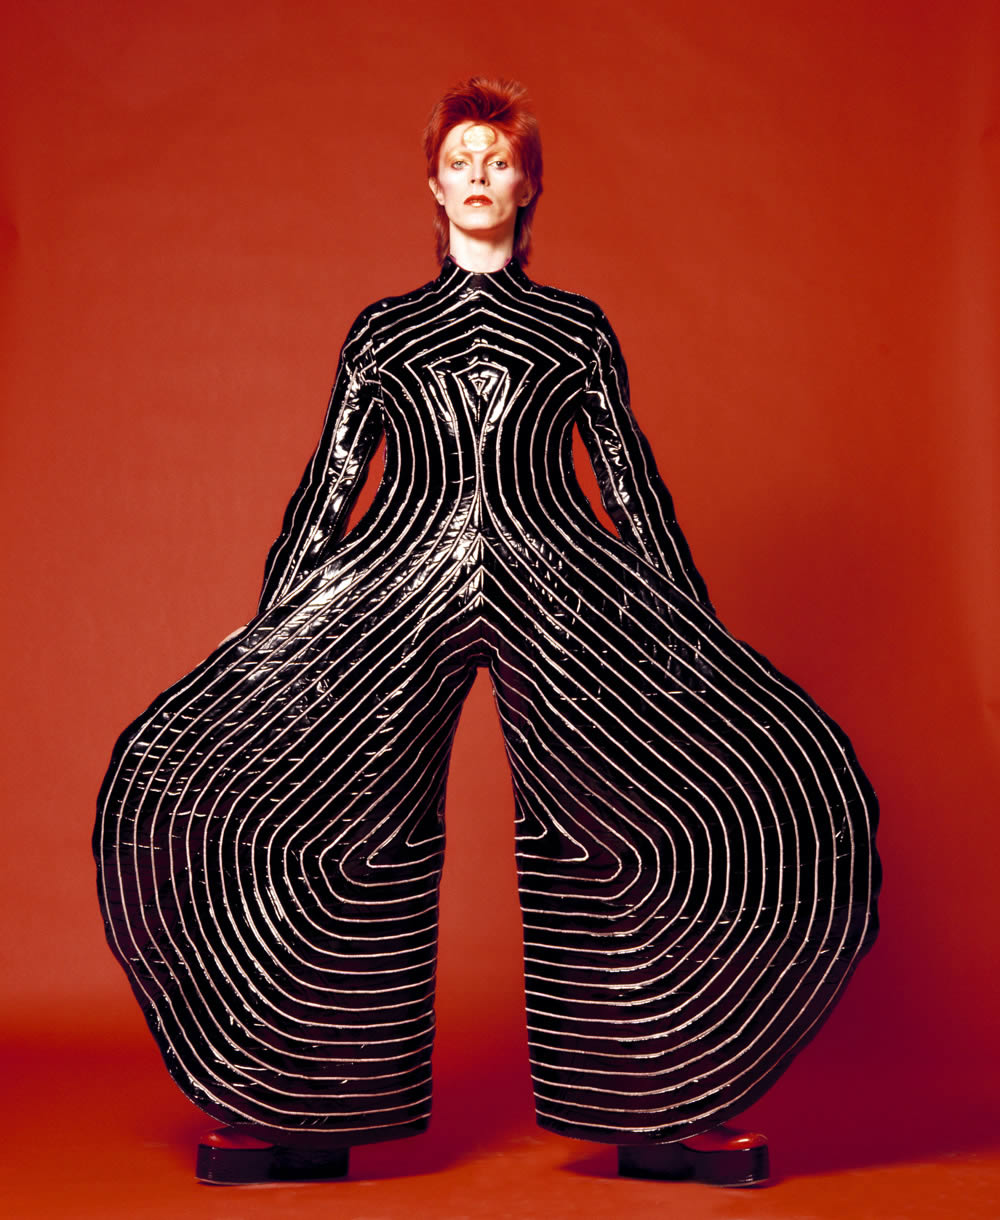 david bowie photography colour fashion